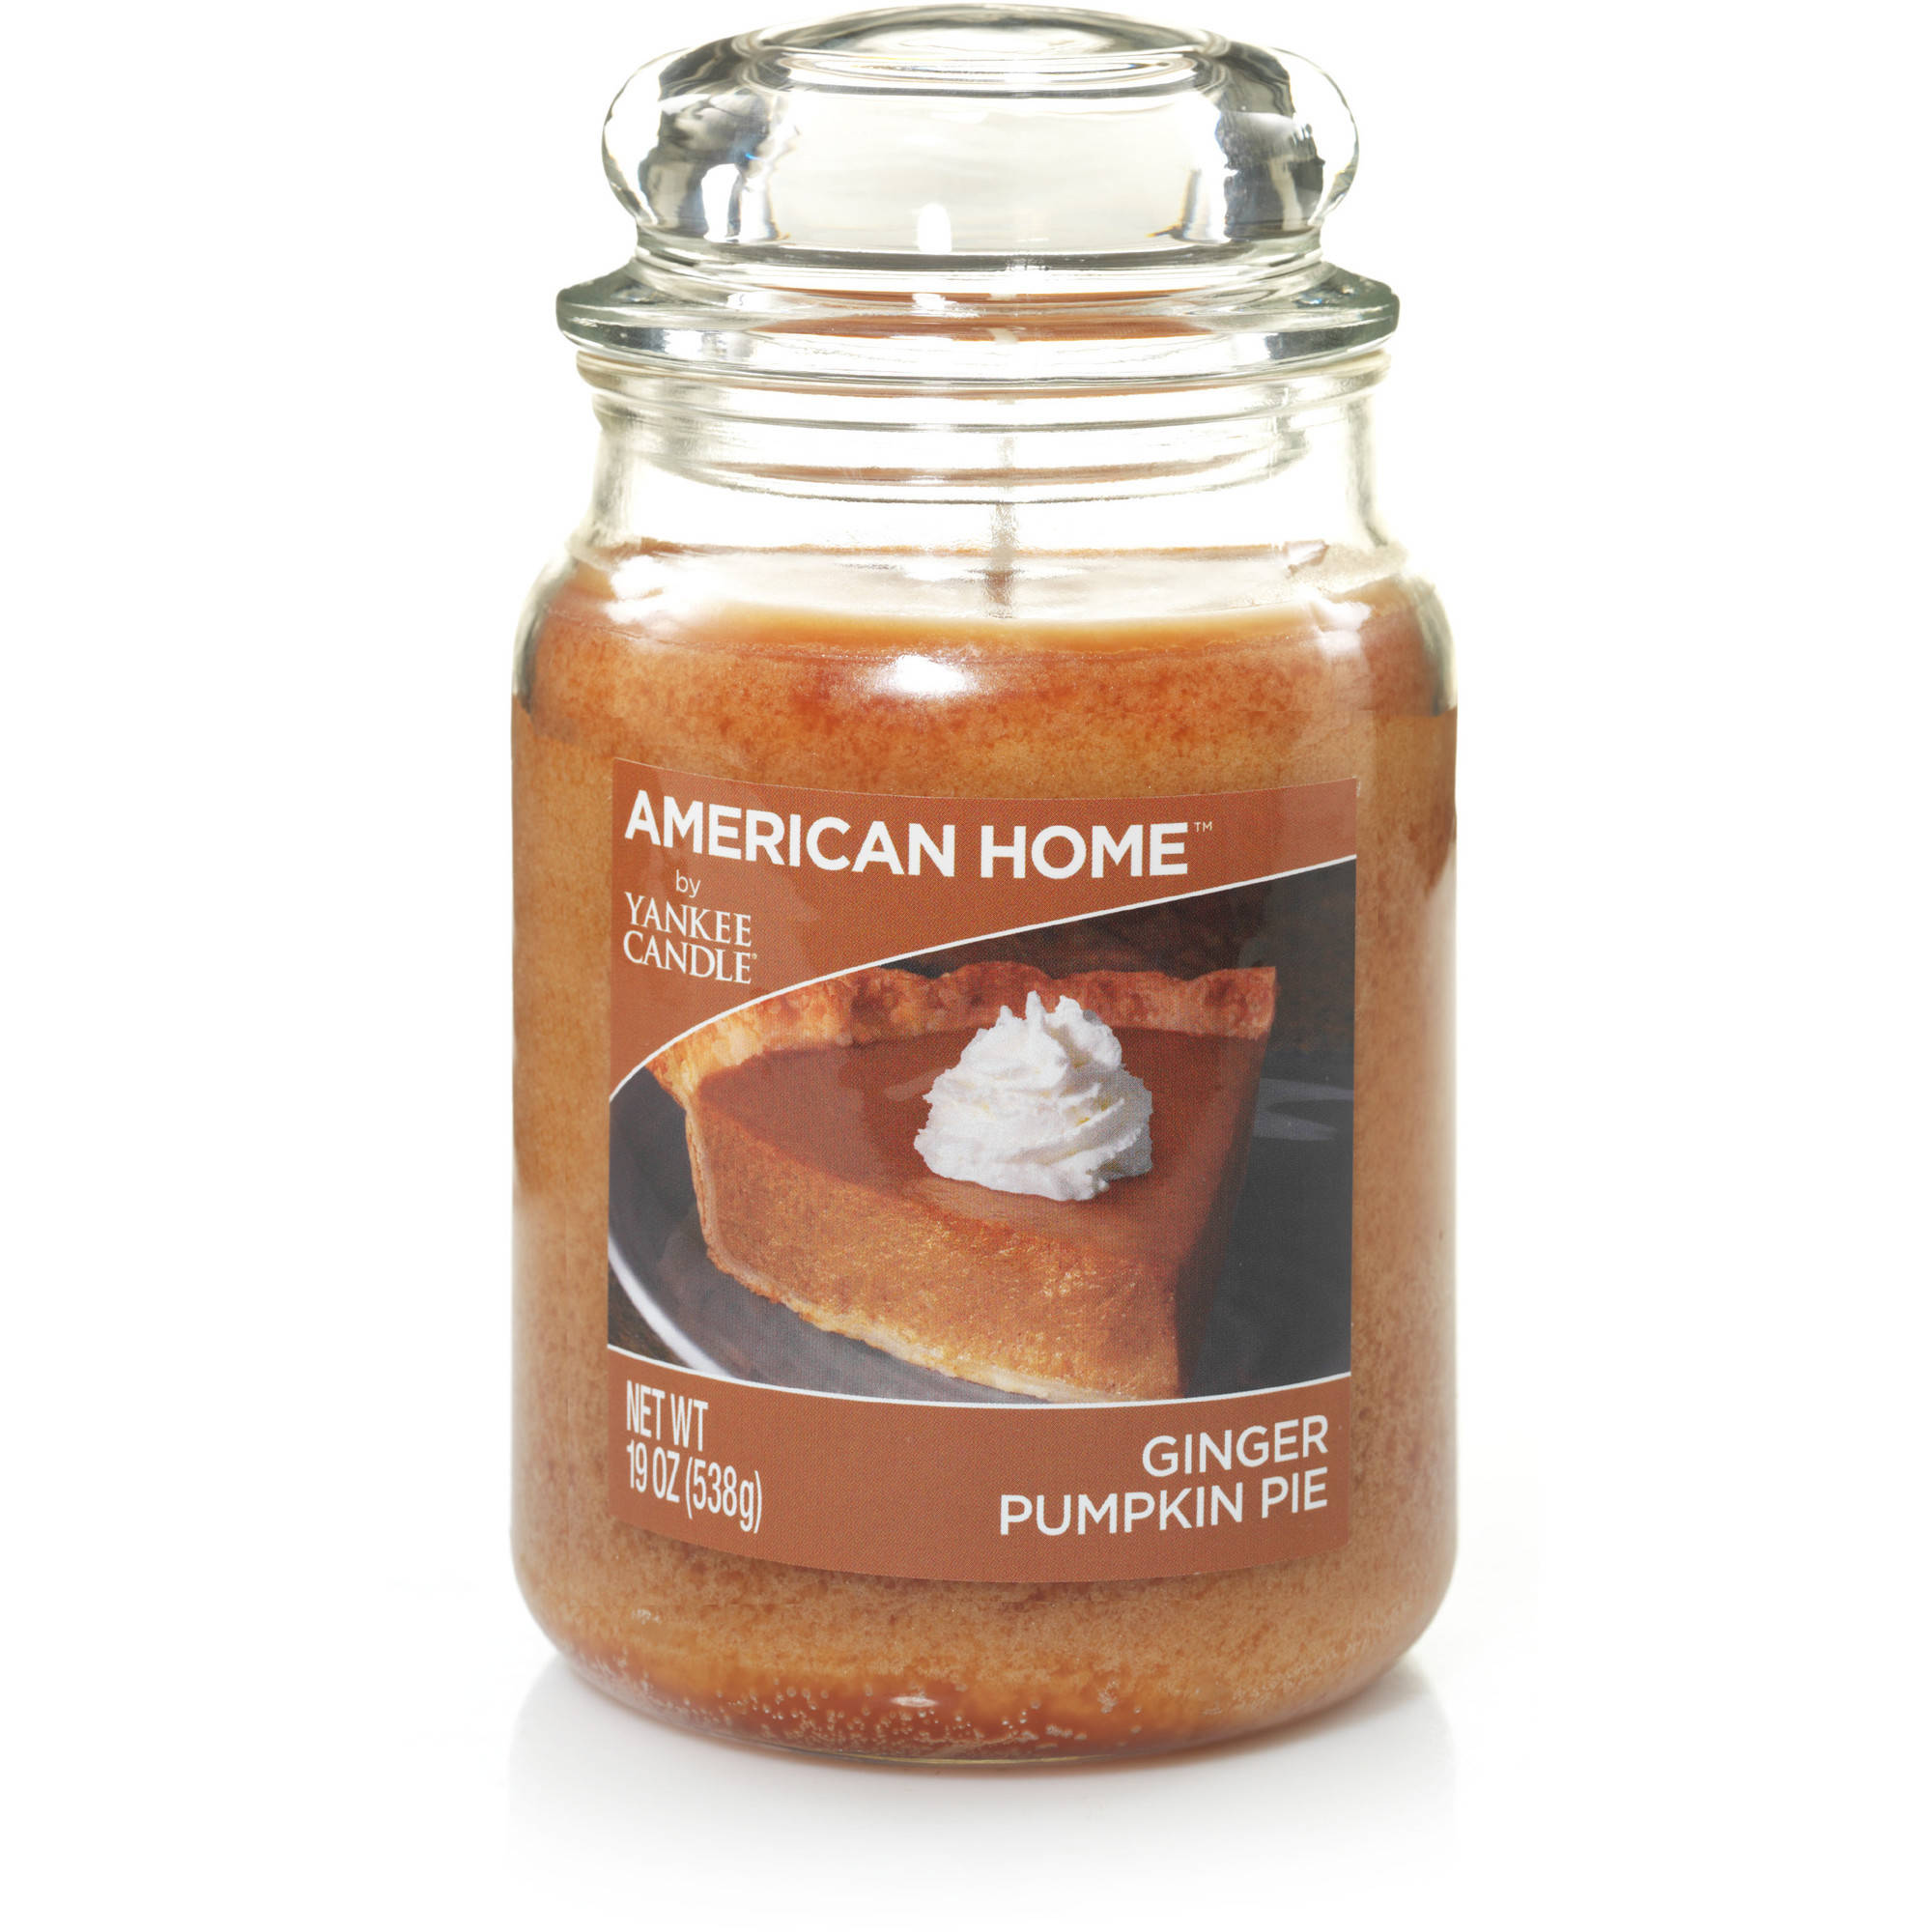 American Home by Yankee Candle Ginger Pumpkin Pie, 19 oz Large Jar